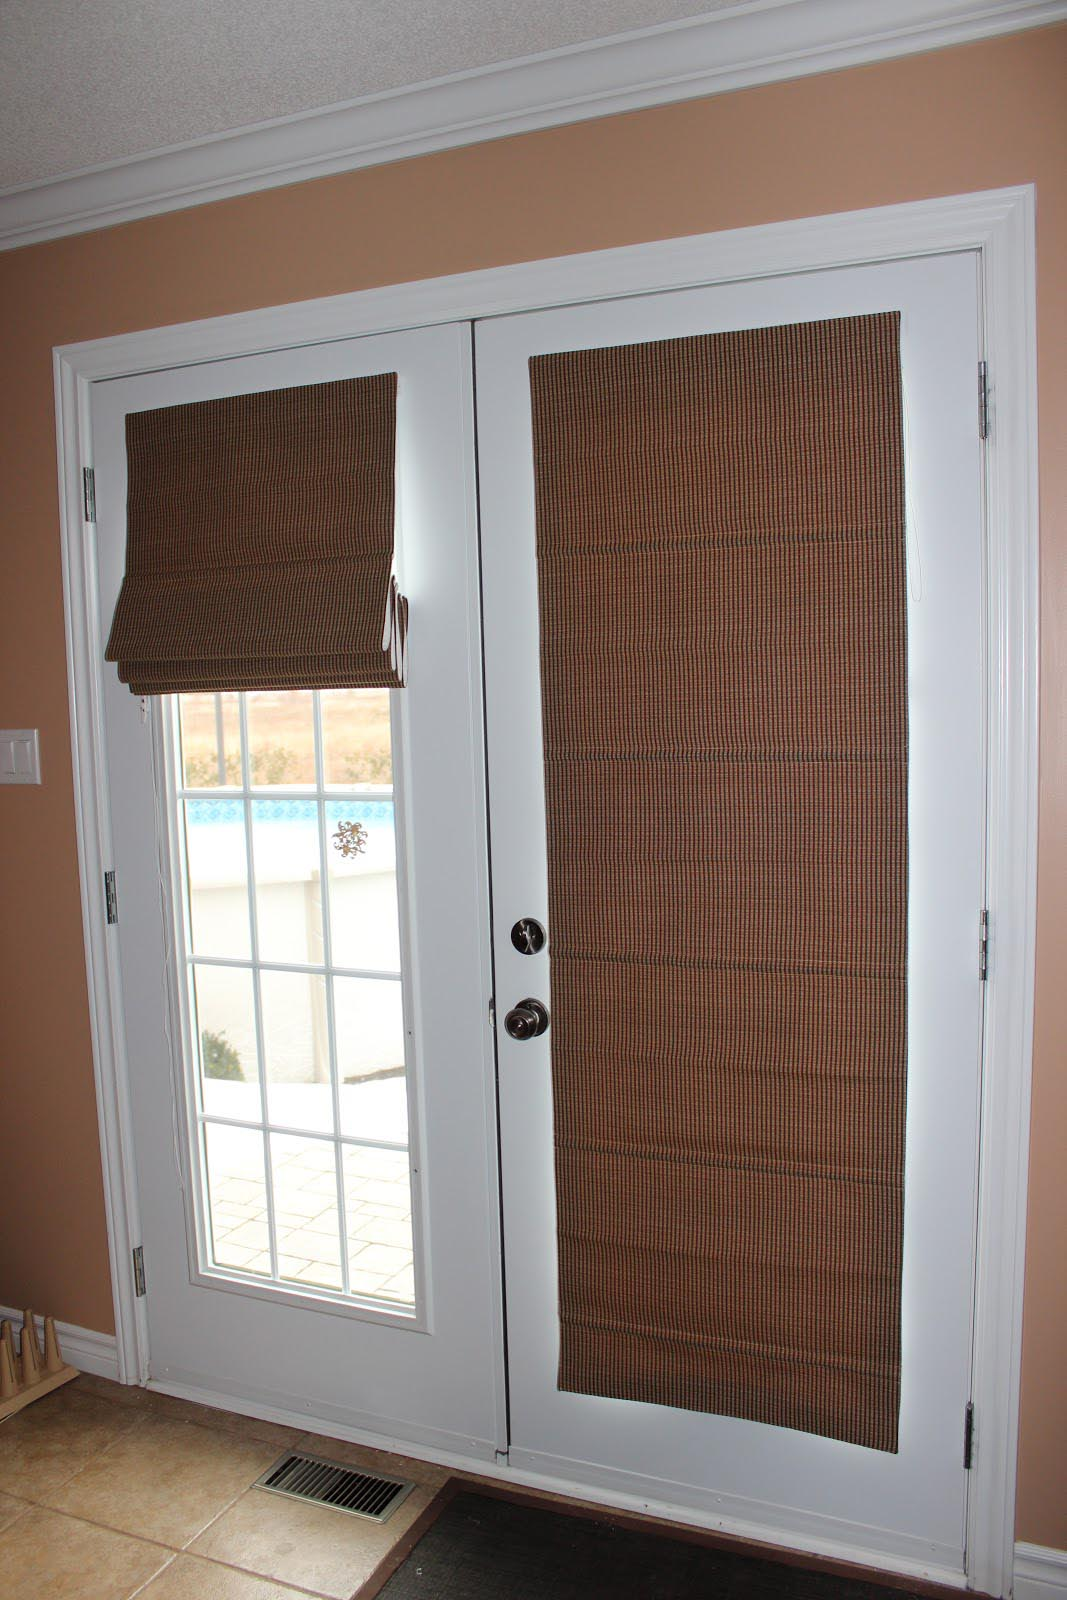 Door Window Shades : Blackout shades for french doors window treatments